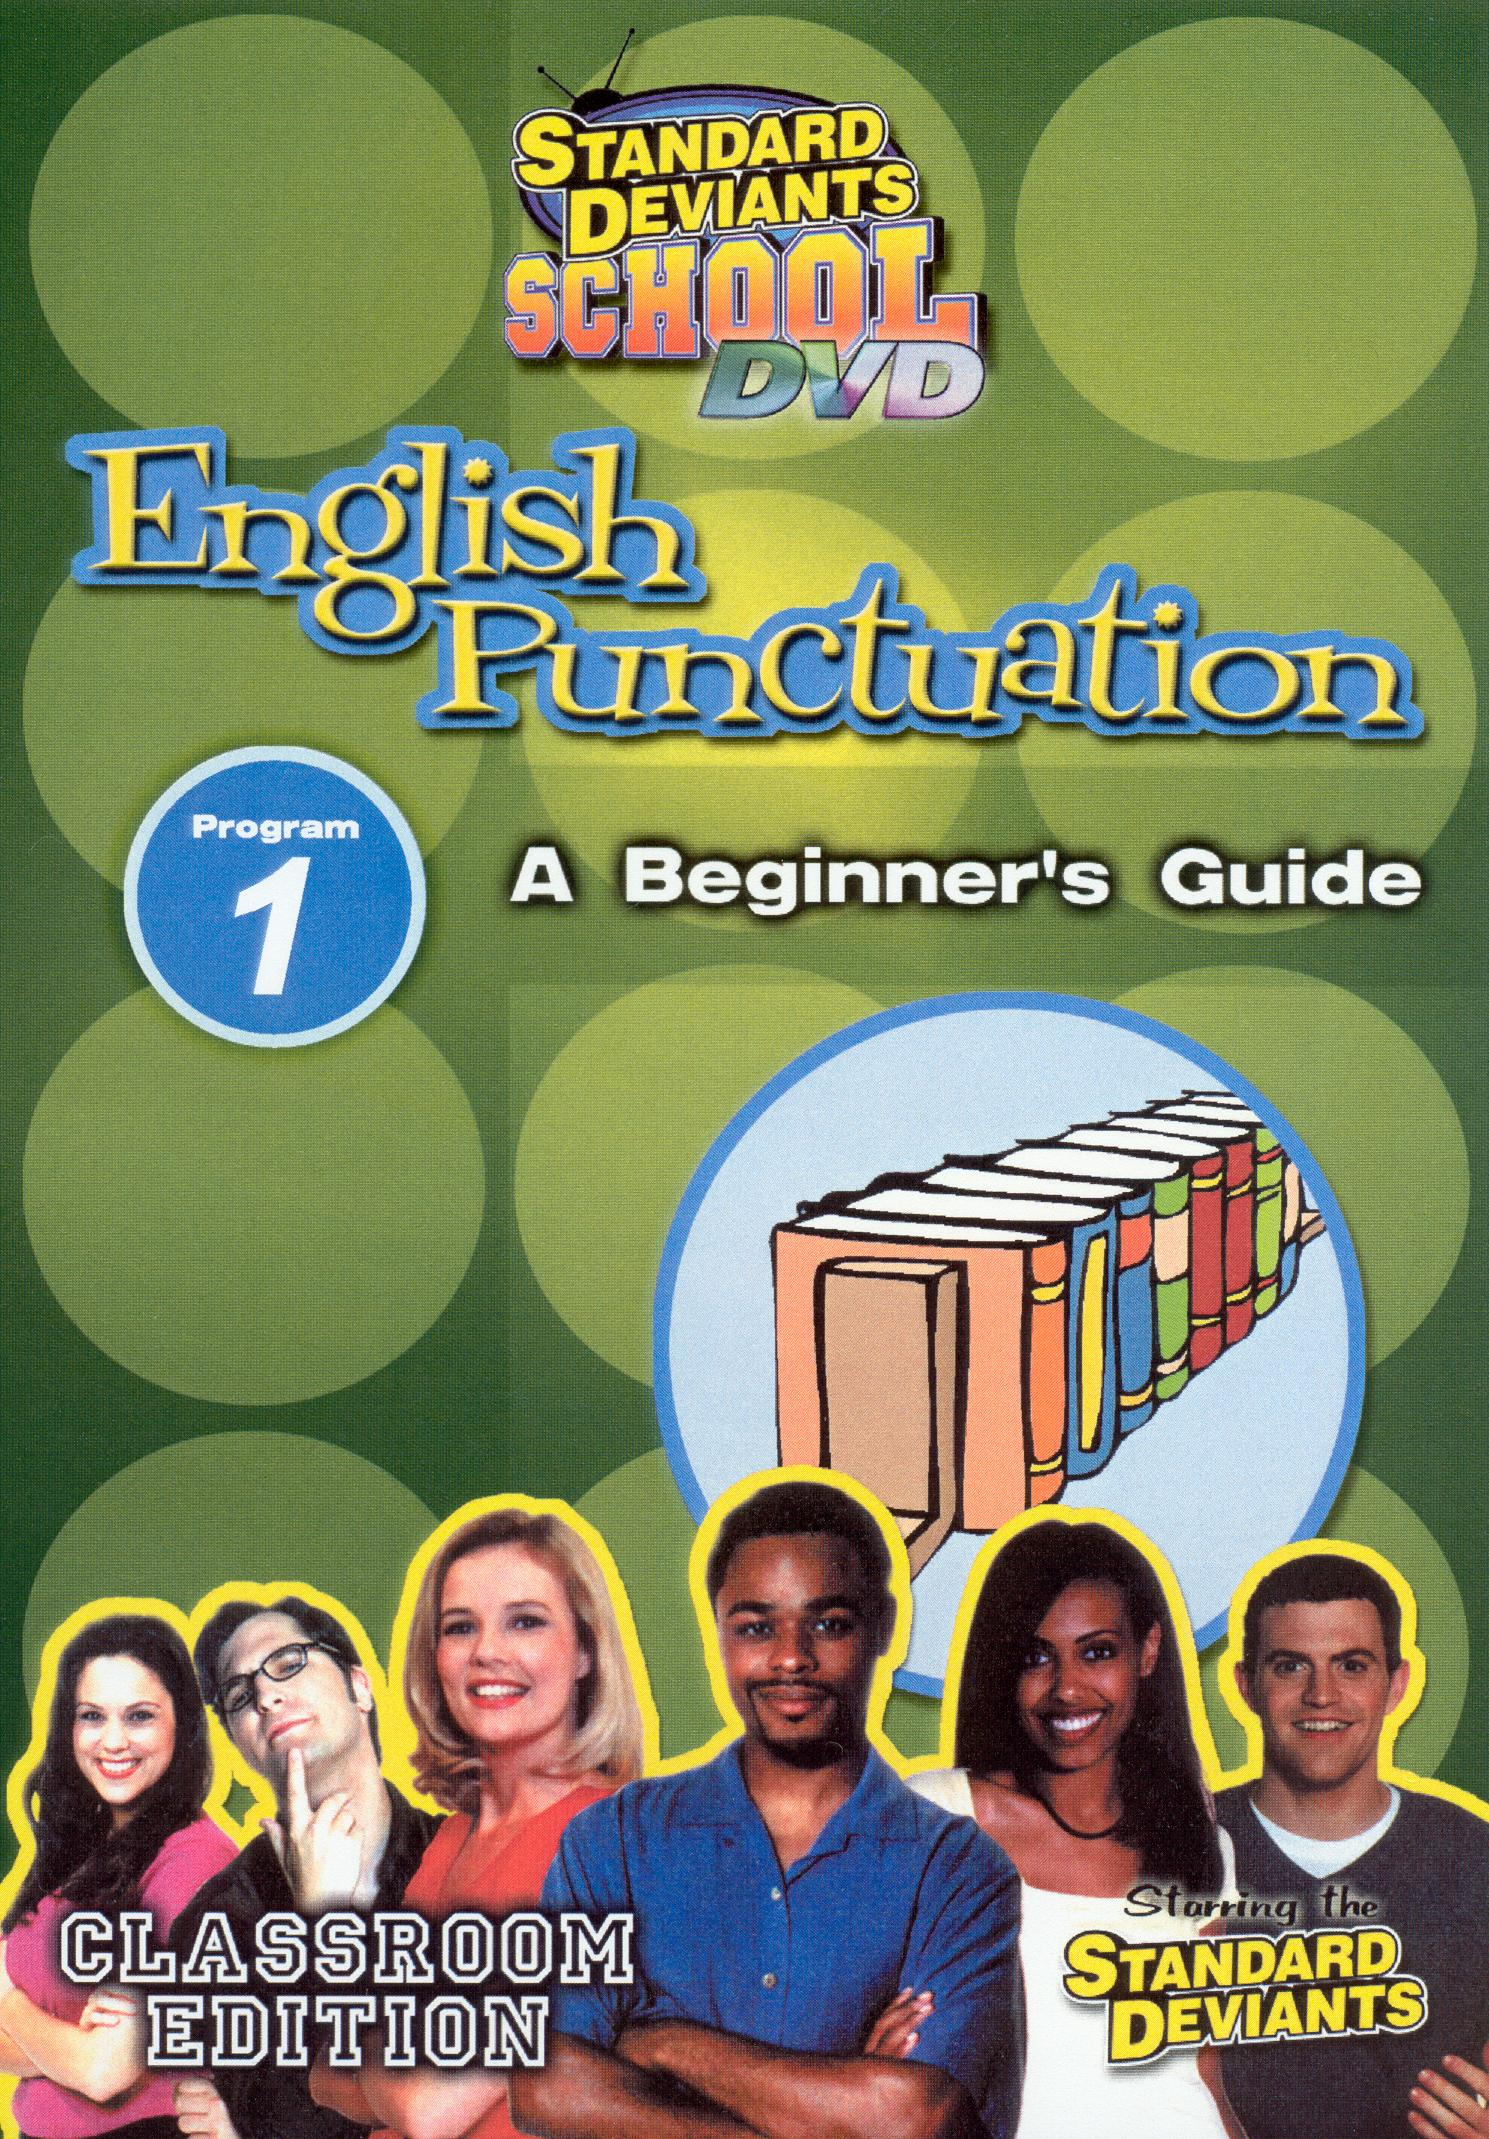 Standard Deviants School: English Puncuation, Program 1